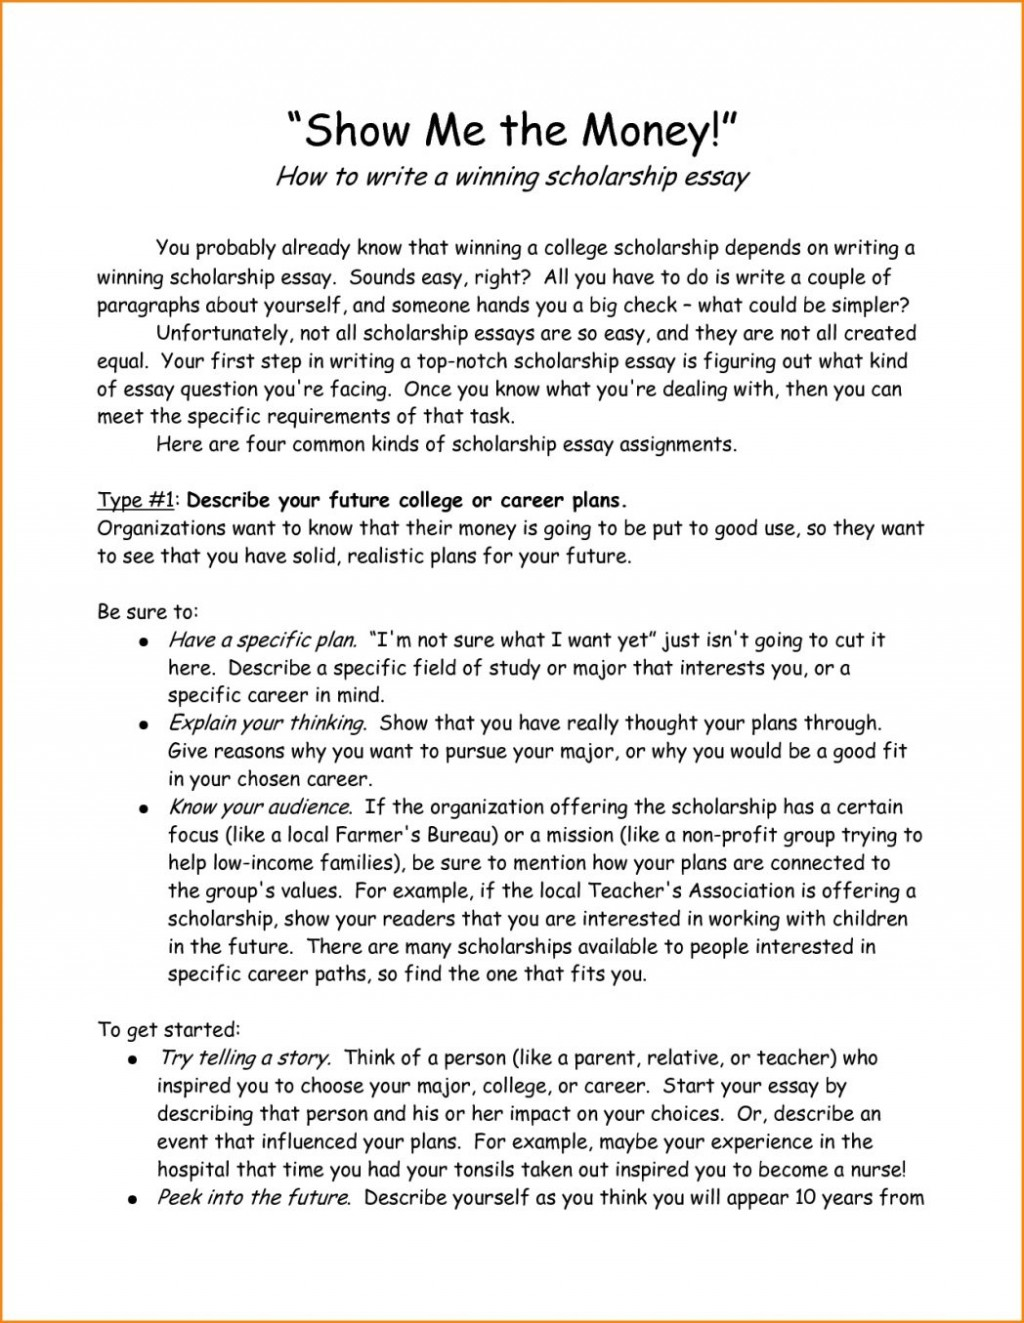 003 Nursing Essay Examples Scholarship Writings And Essays Ideas Of Why Nurse Sample Cover Letter Job W Ethics Career For Uk Australia Mentorship School Narrative Admission Unbelievable Graduate Large